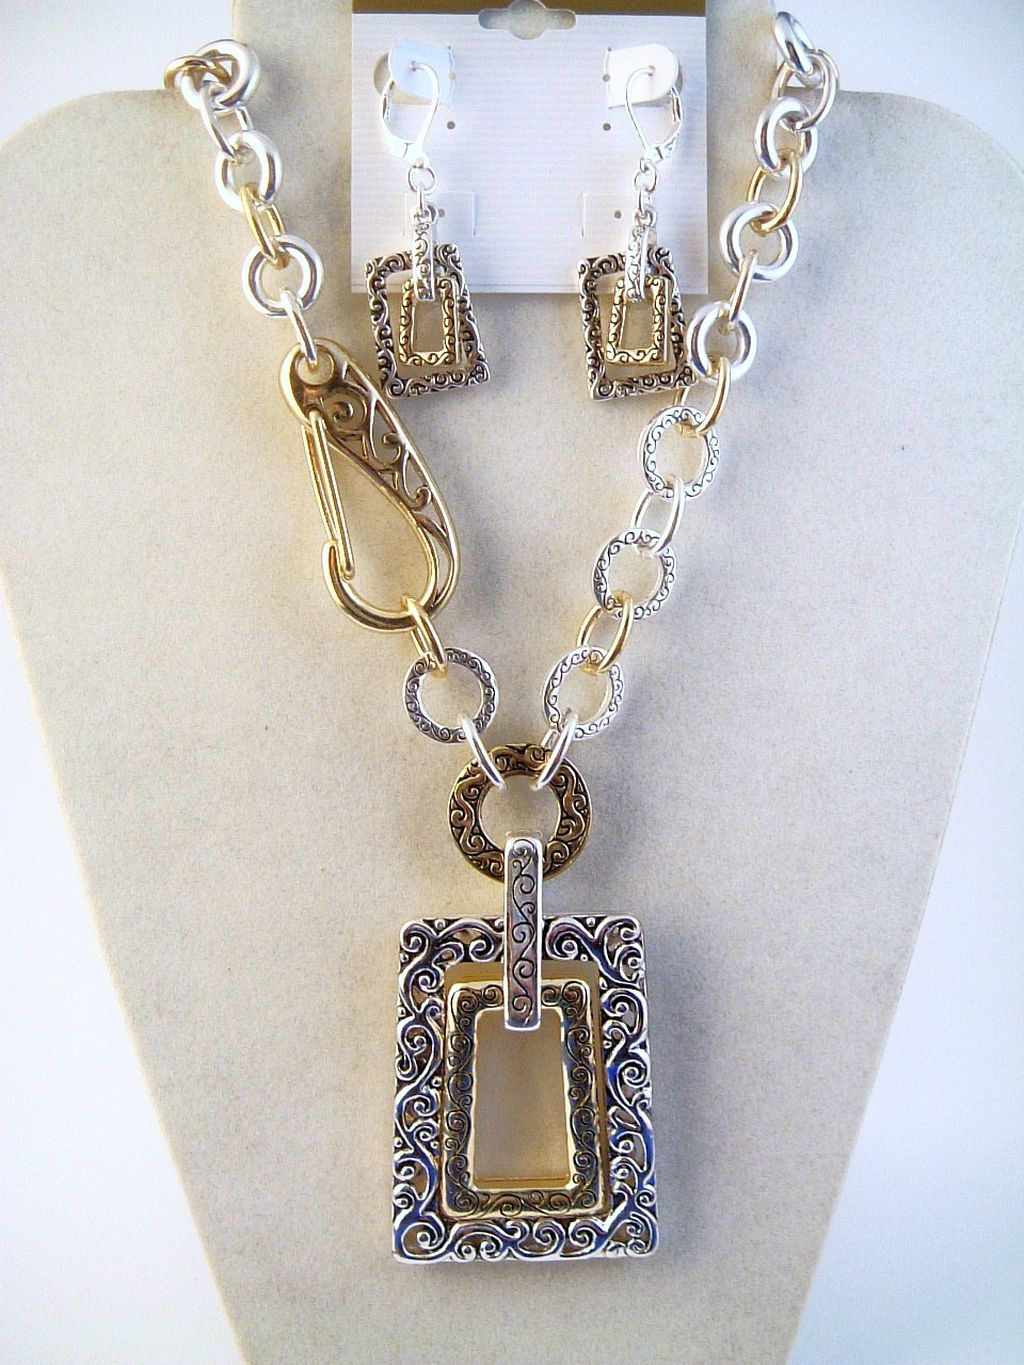 Vintage Filigree Two Tone Large Double Trapezoid Pendant Necklace Earrings Set